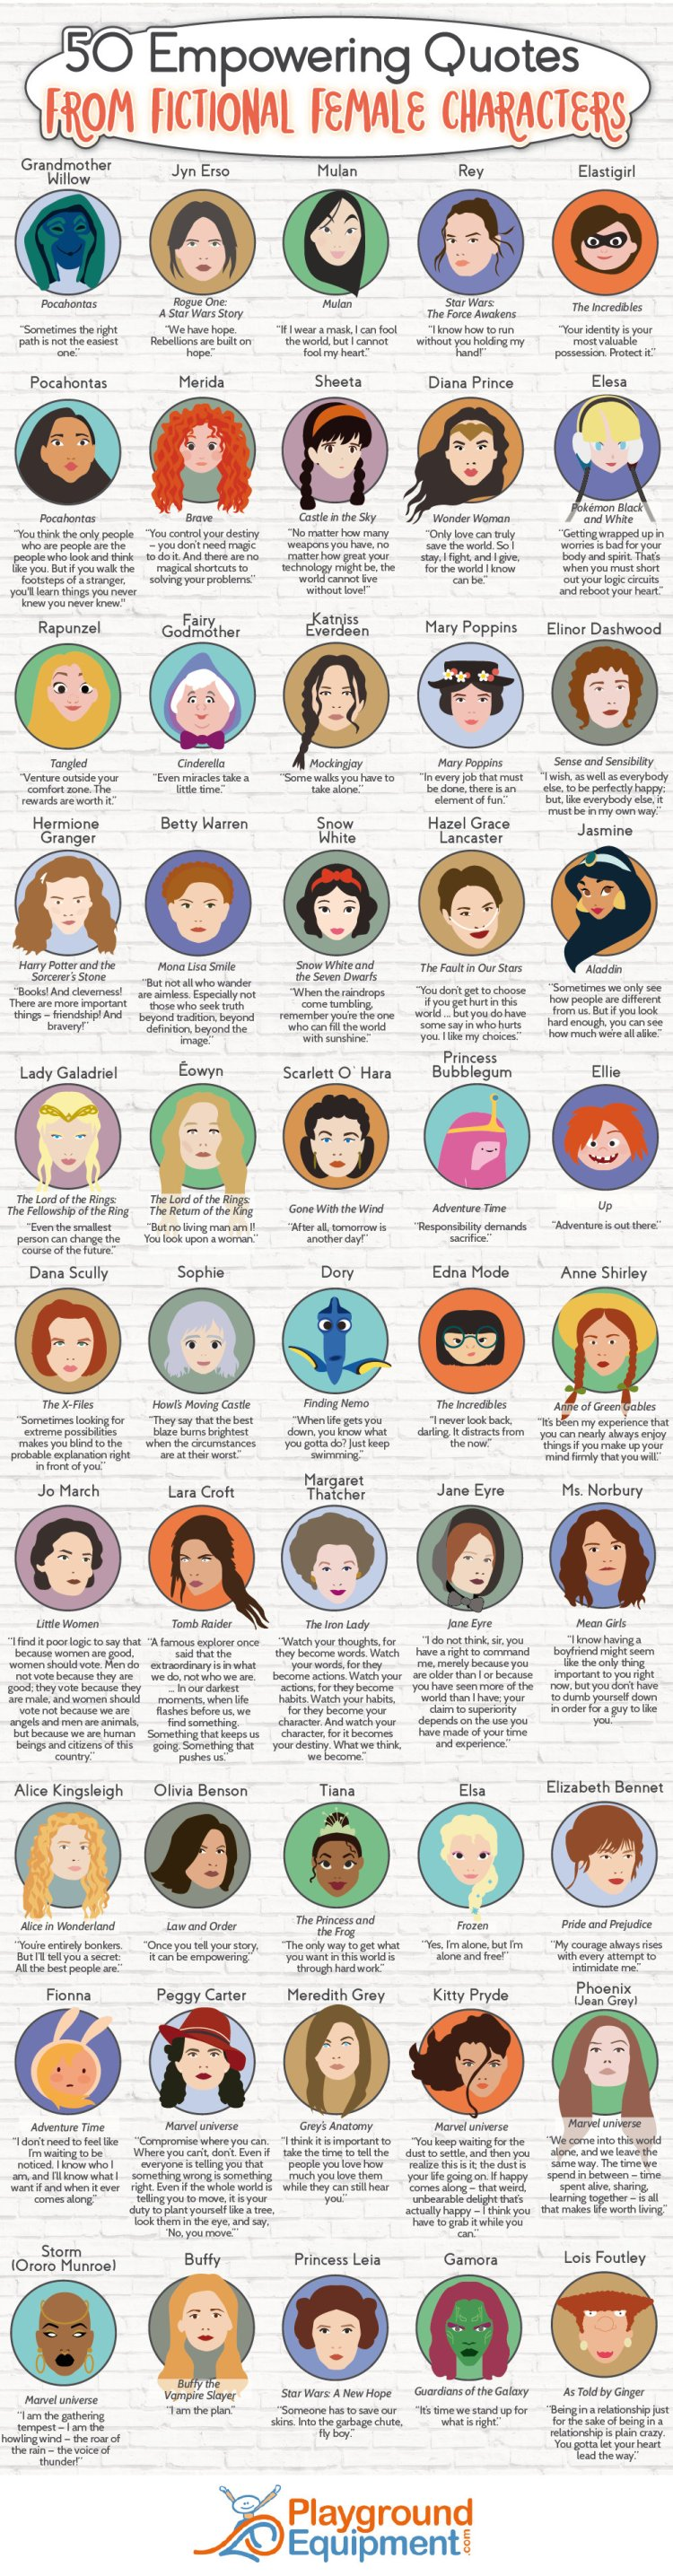 50-empowering-quotes-from-fictional-female-characters-4